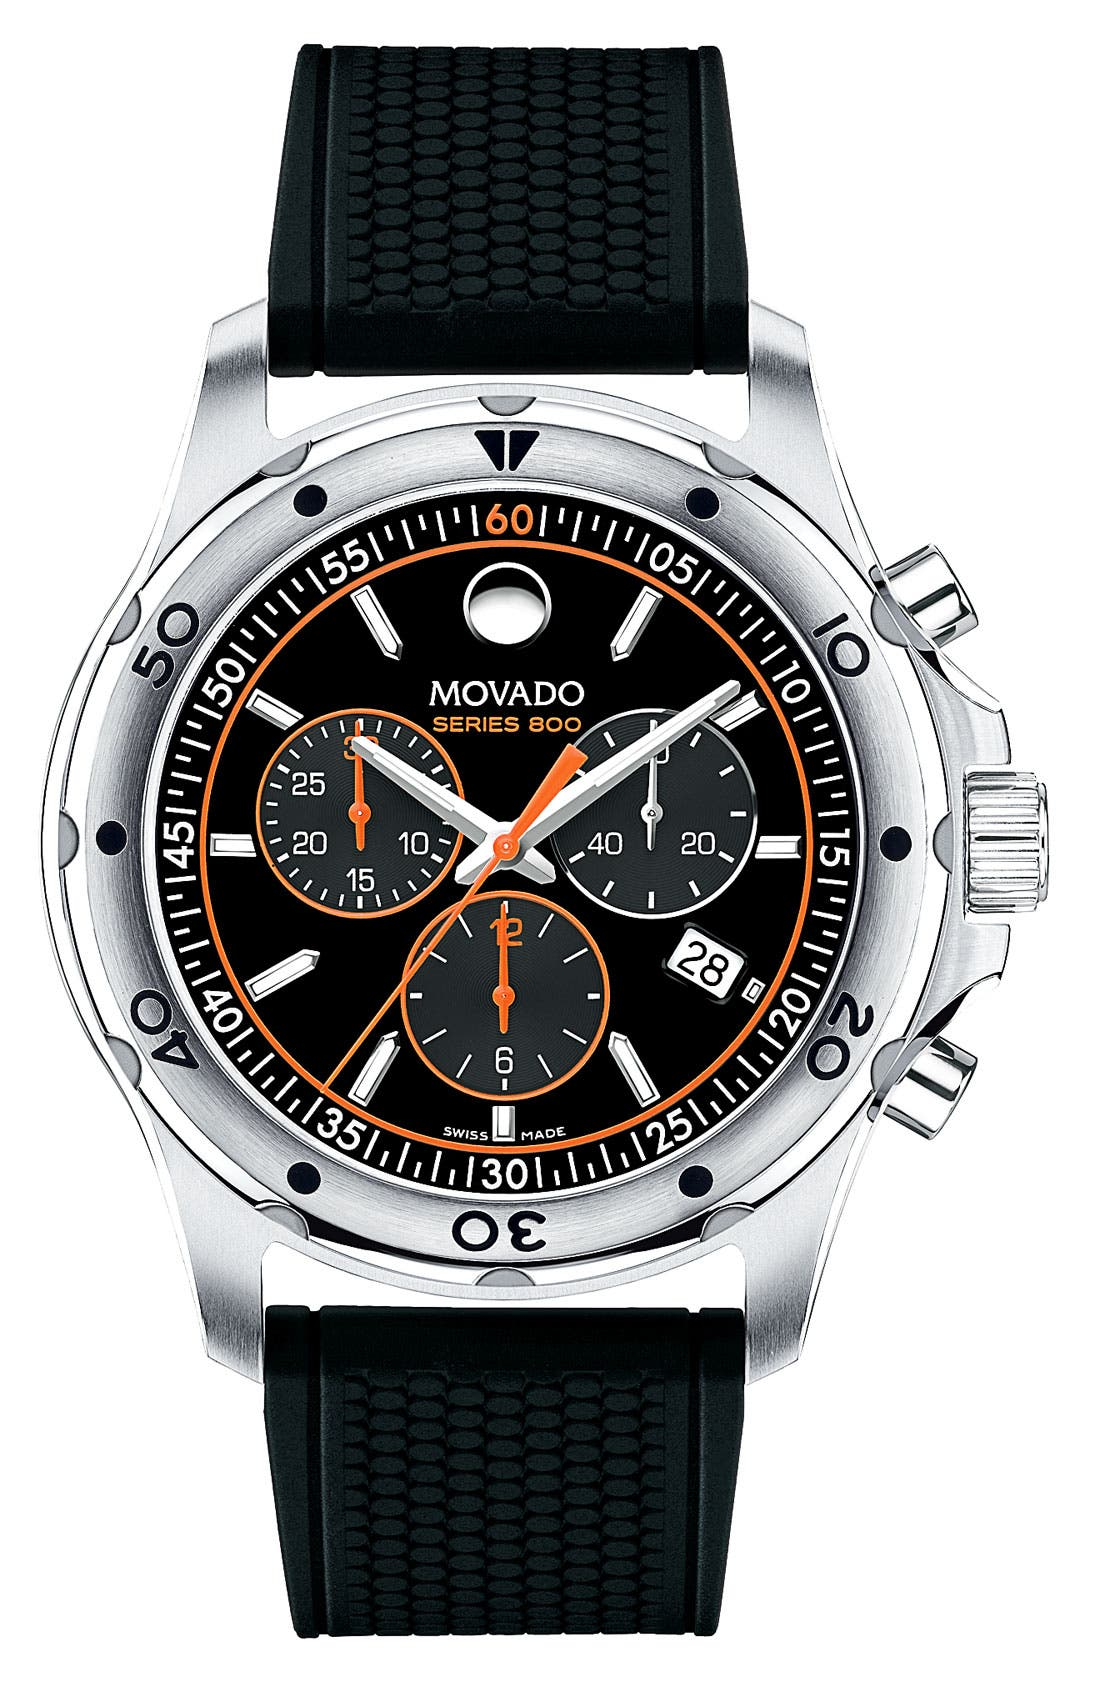 Alternate Image 1 Selected - Movado 'Series 800' Chronograph Rubber Strap Watch